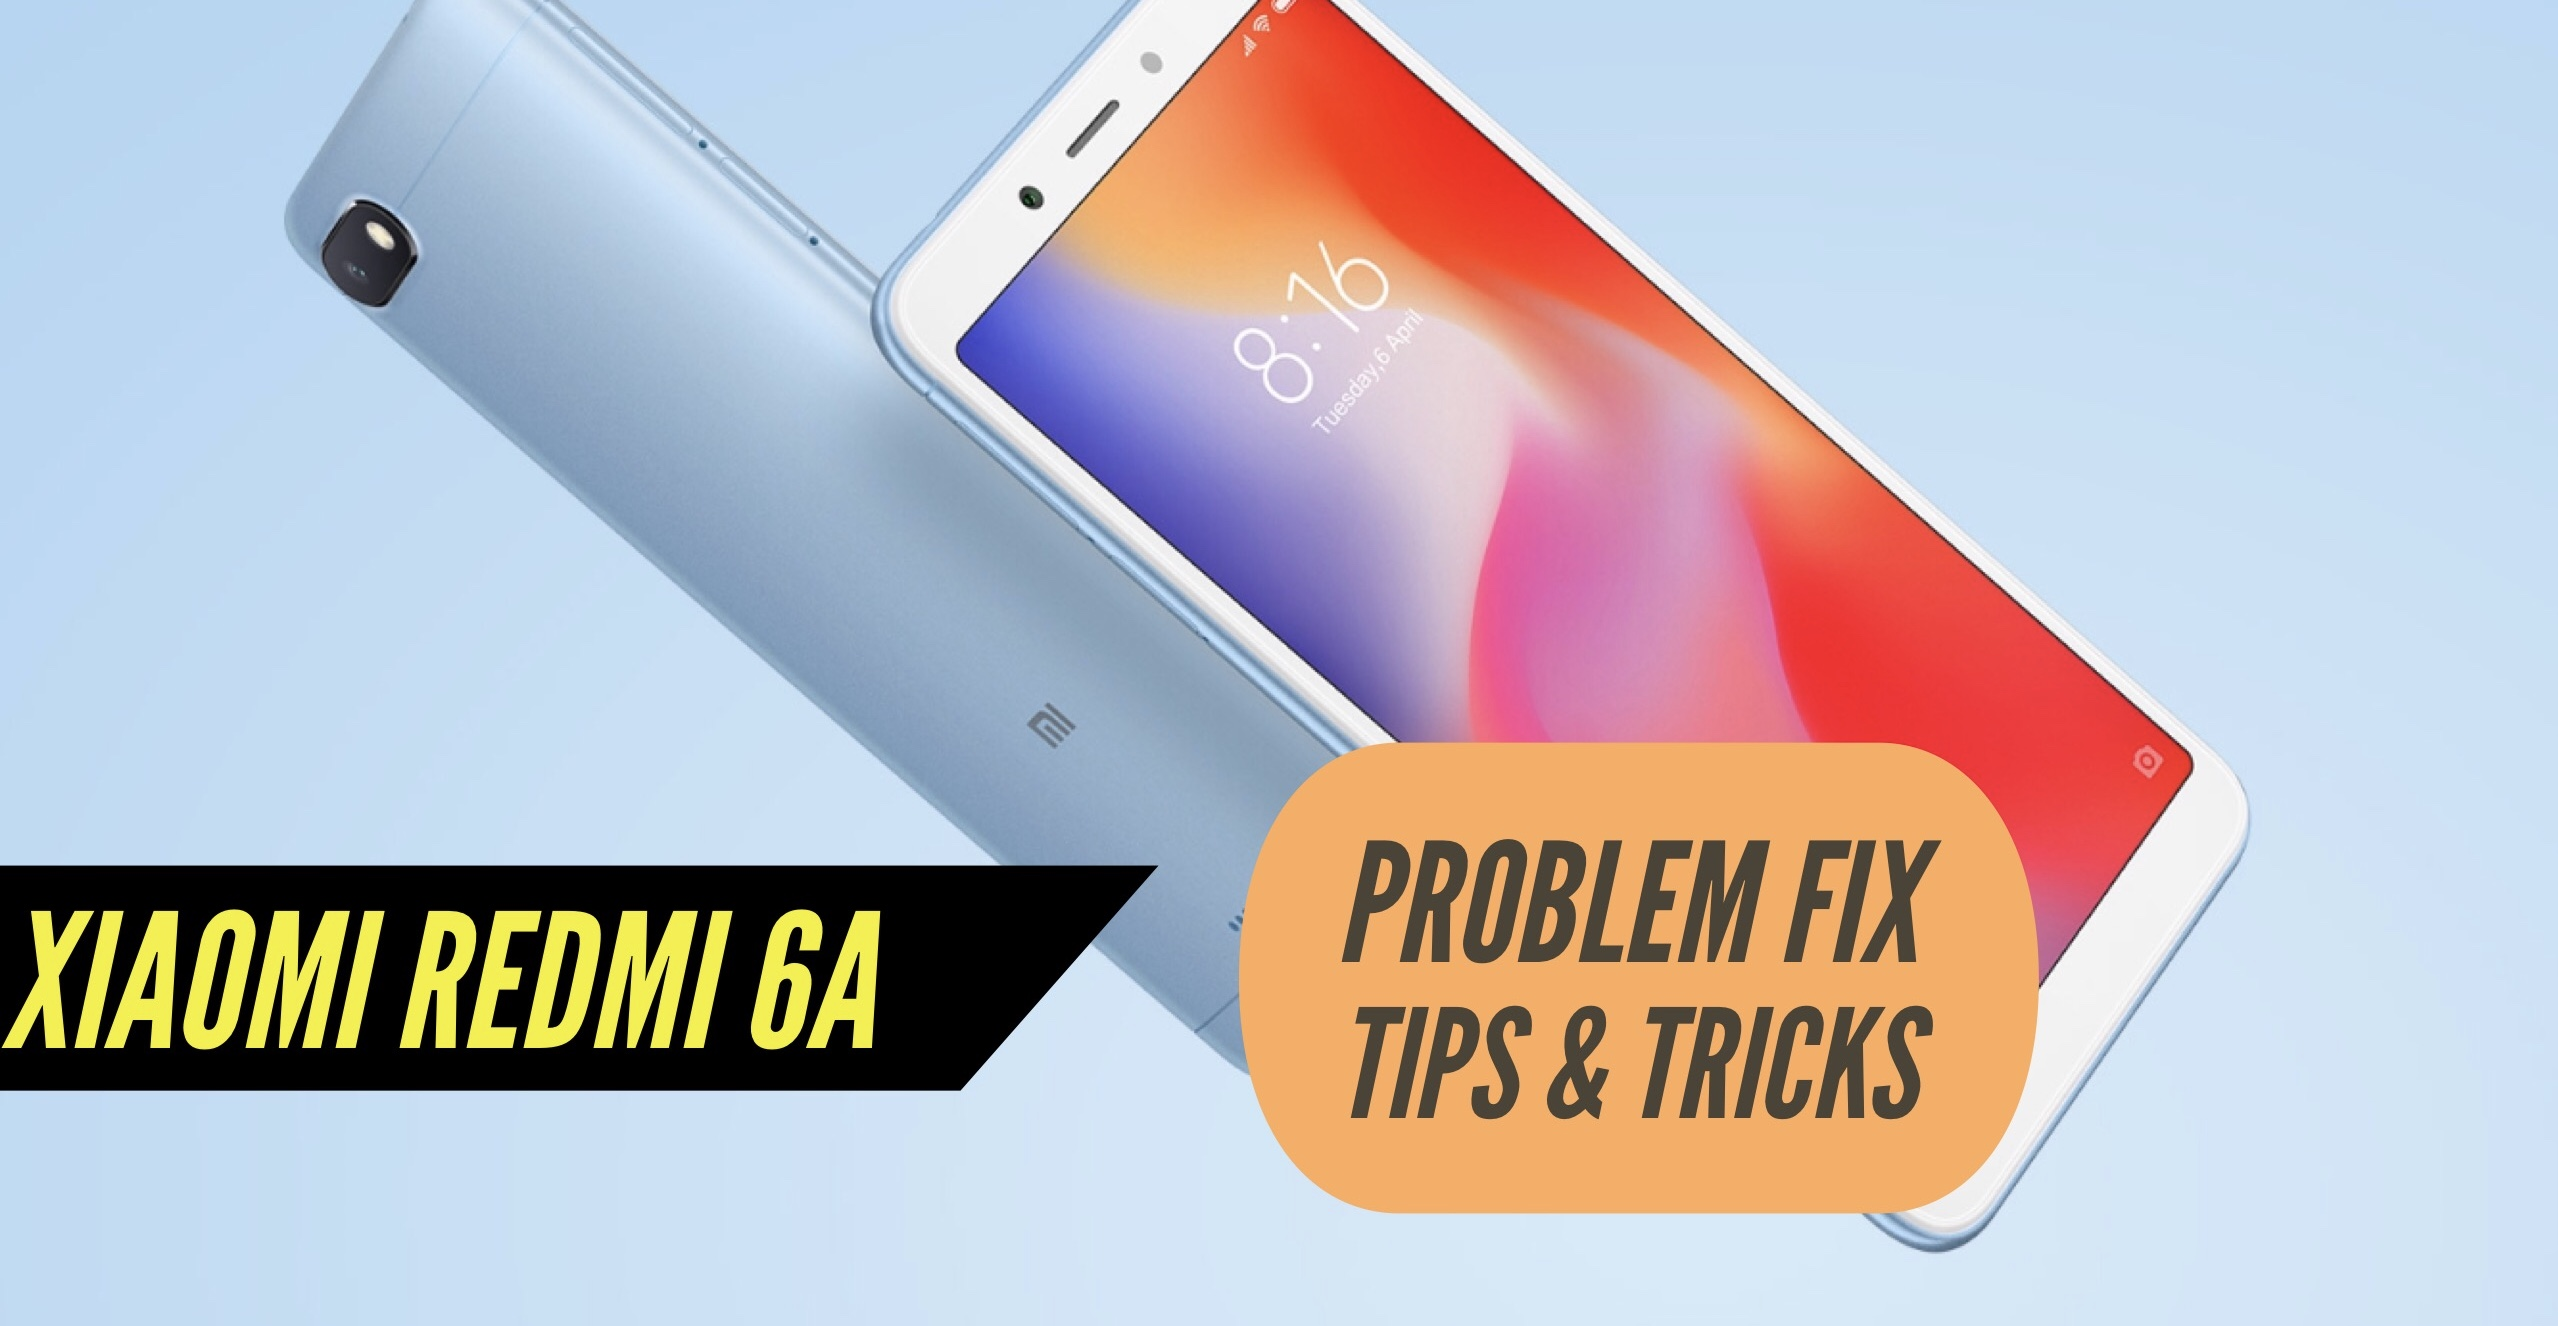 Redmi 6A Most Common Problems & Issues + Solution Fix - TIPS